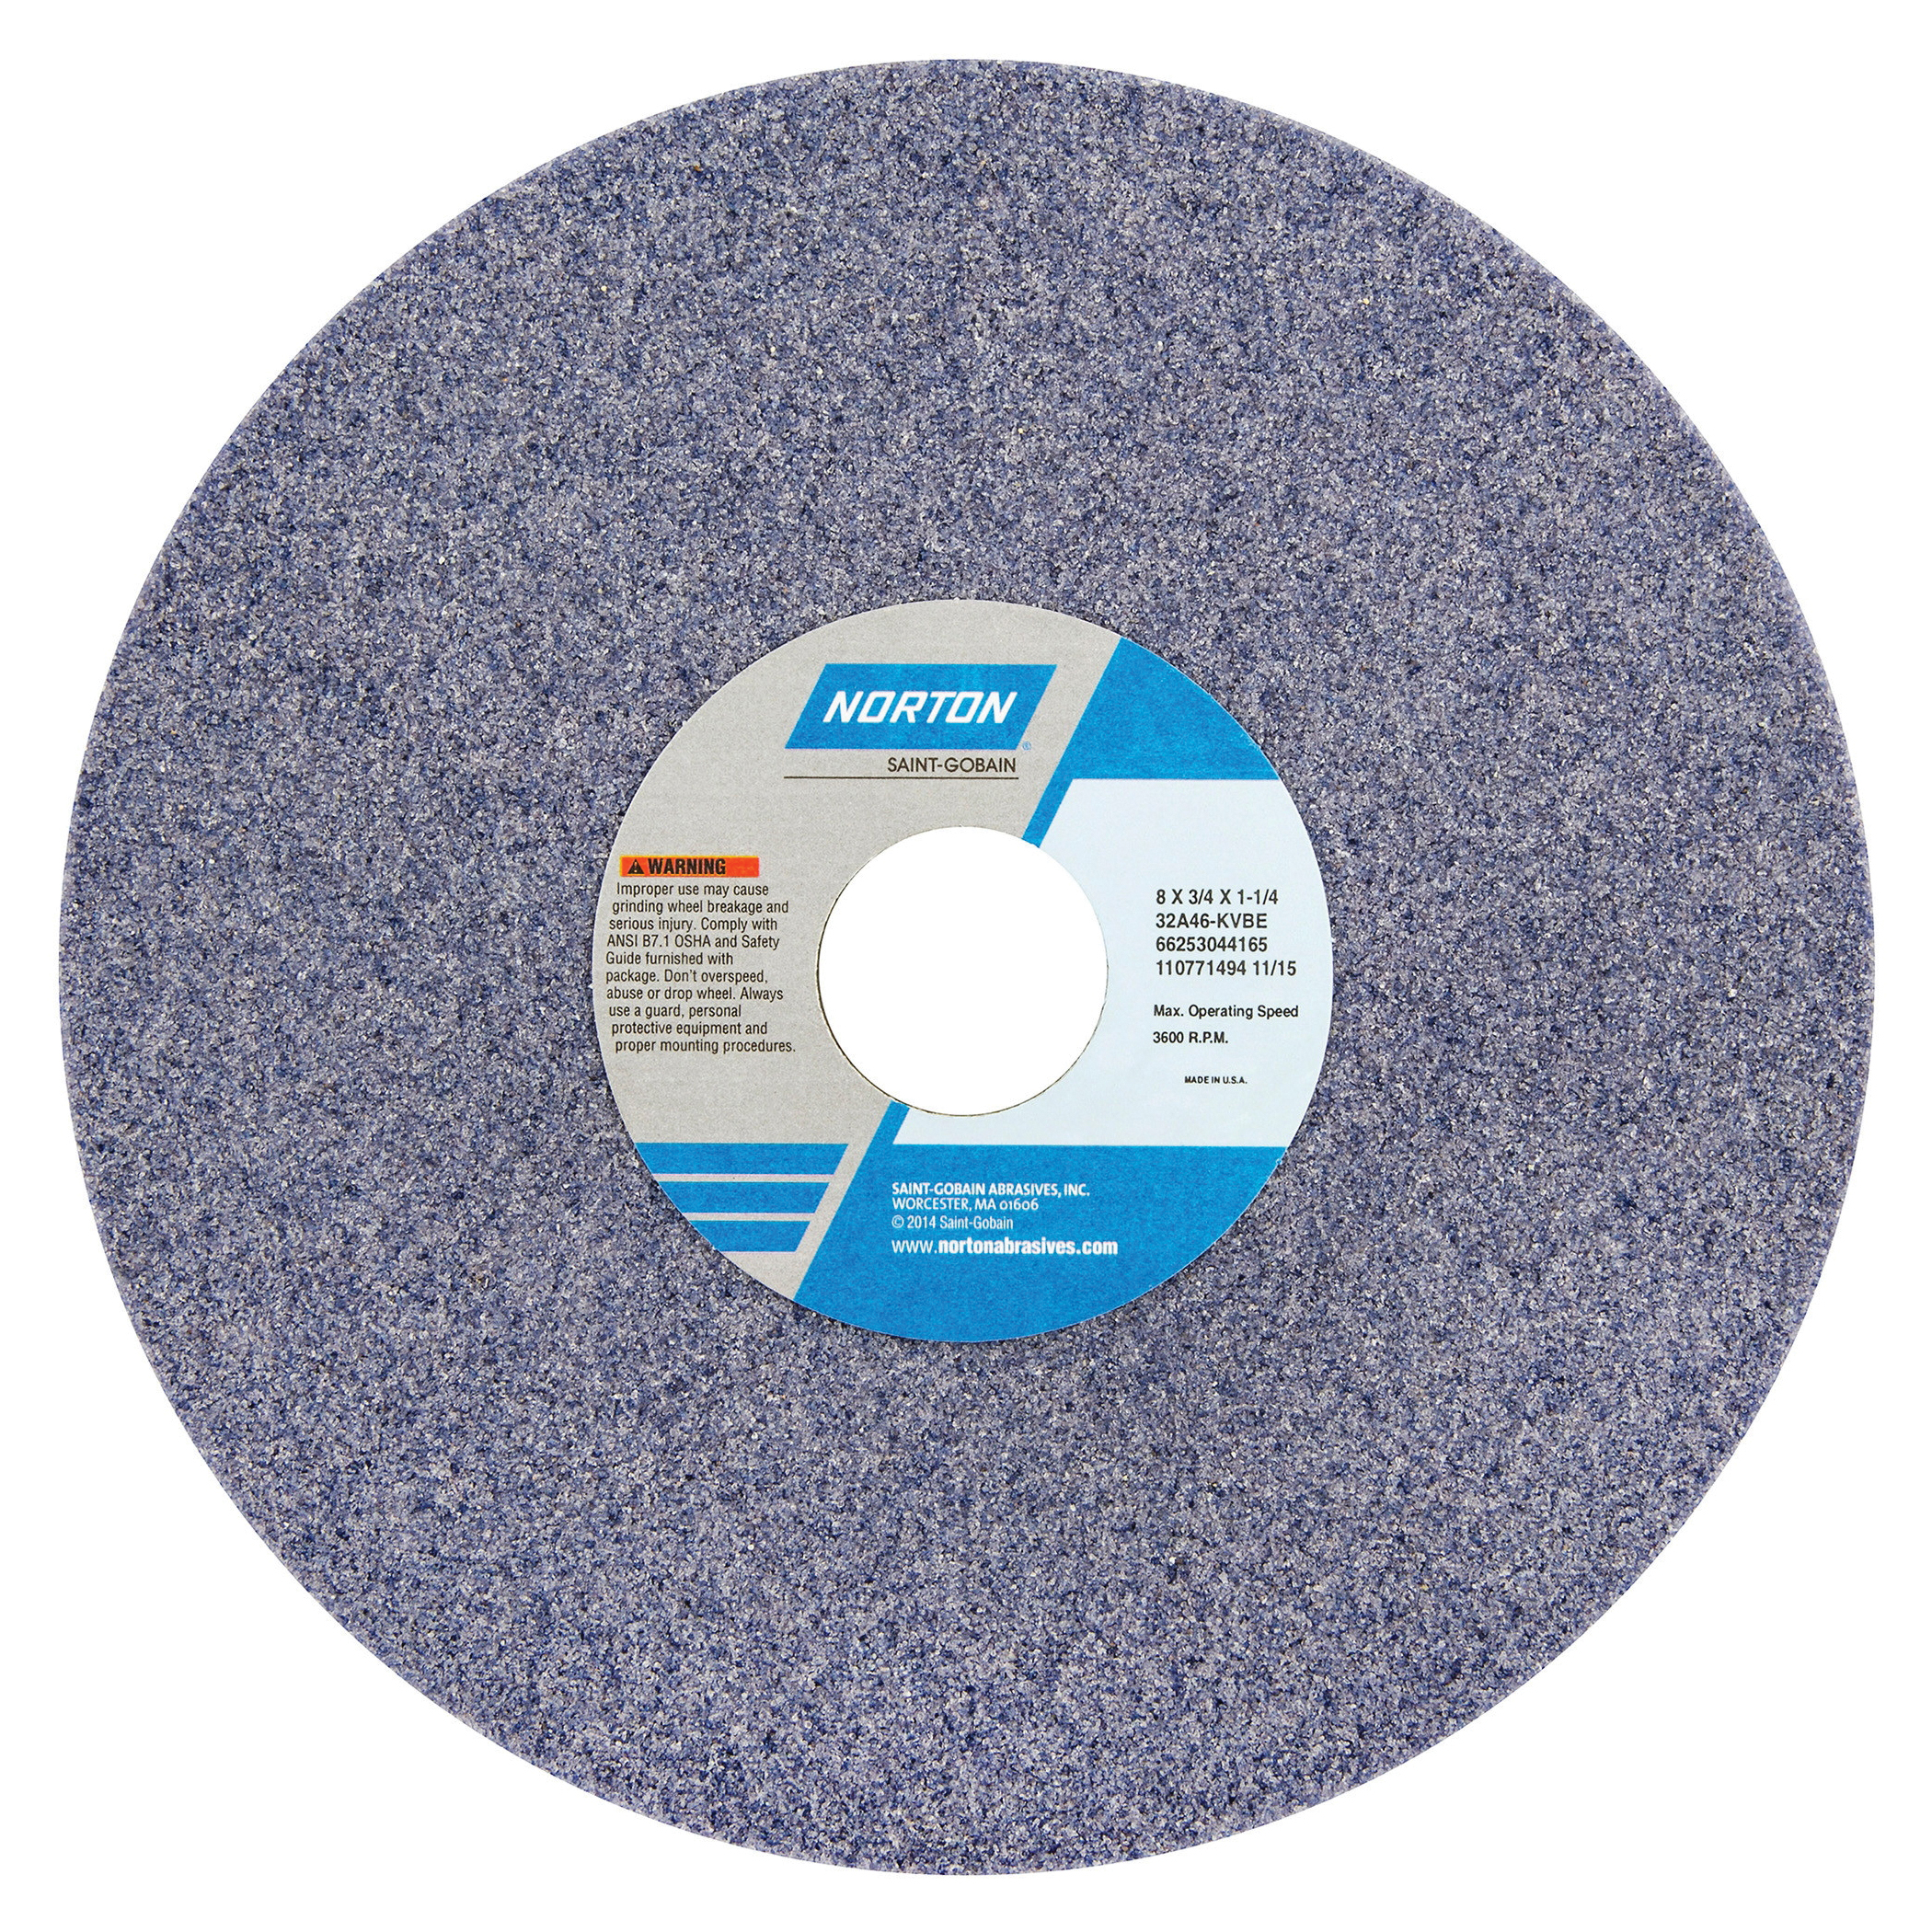 Norton® 66253044215 32A Straight Toolroom Wheel, 8 in Dia x 3/4 in THK, 1-1/4 in Center Hole, 46 Grit, Aluminum Oxide Abrasive